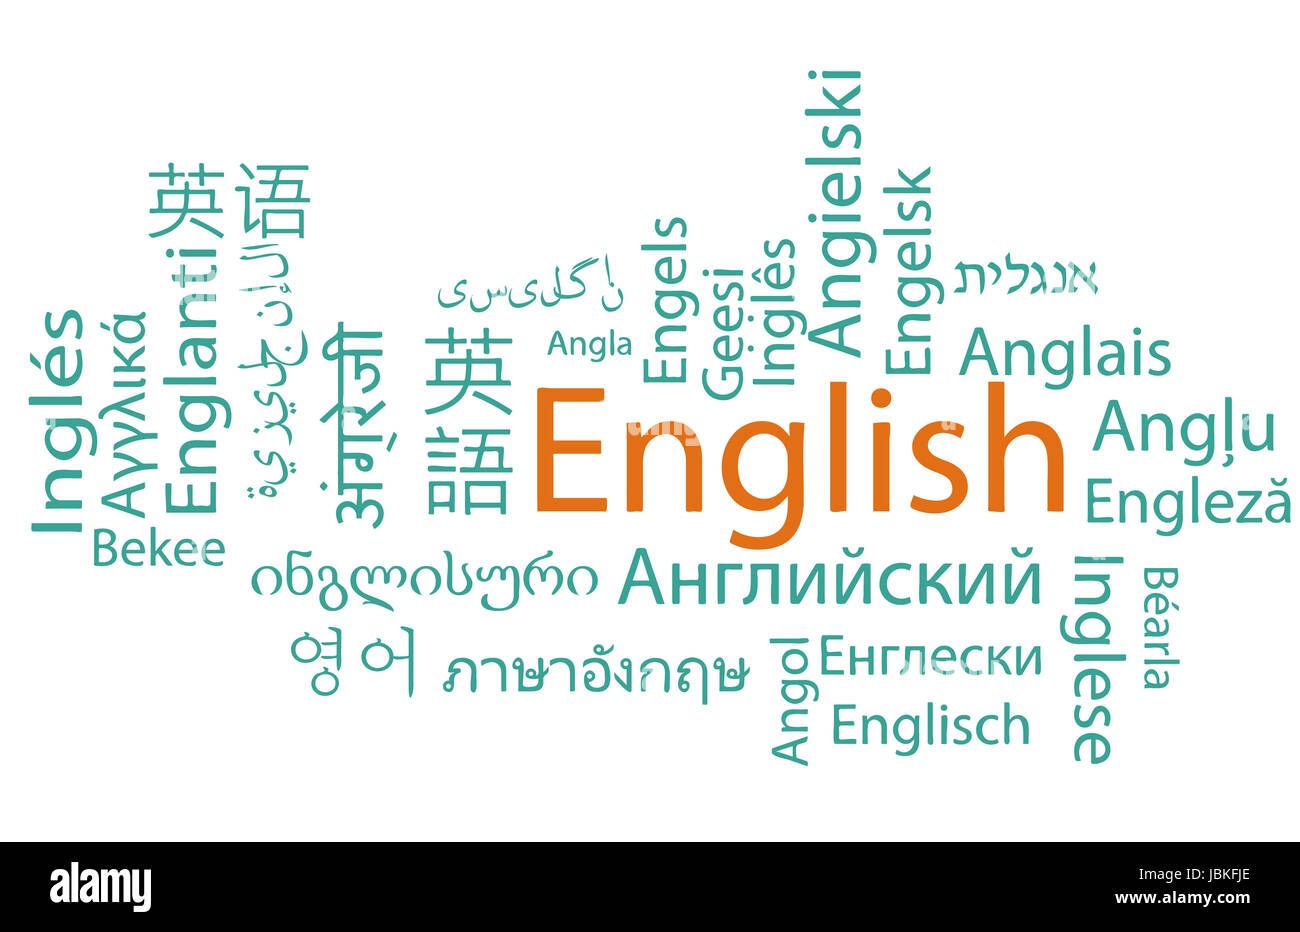 Learning English, different languages. Vector. - Stock Image